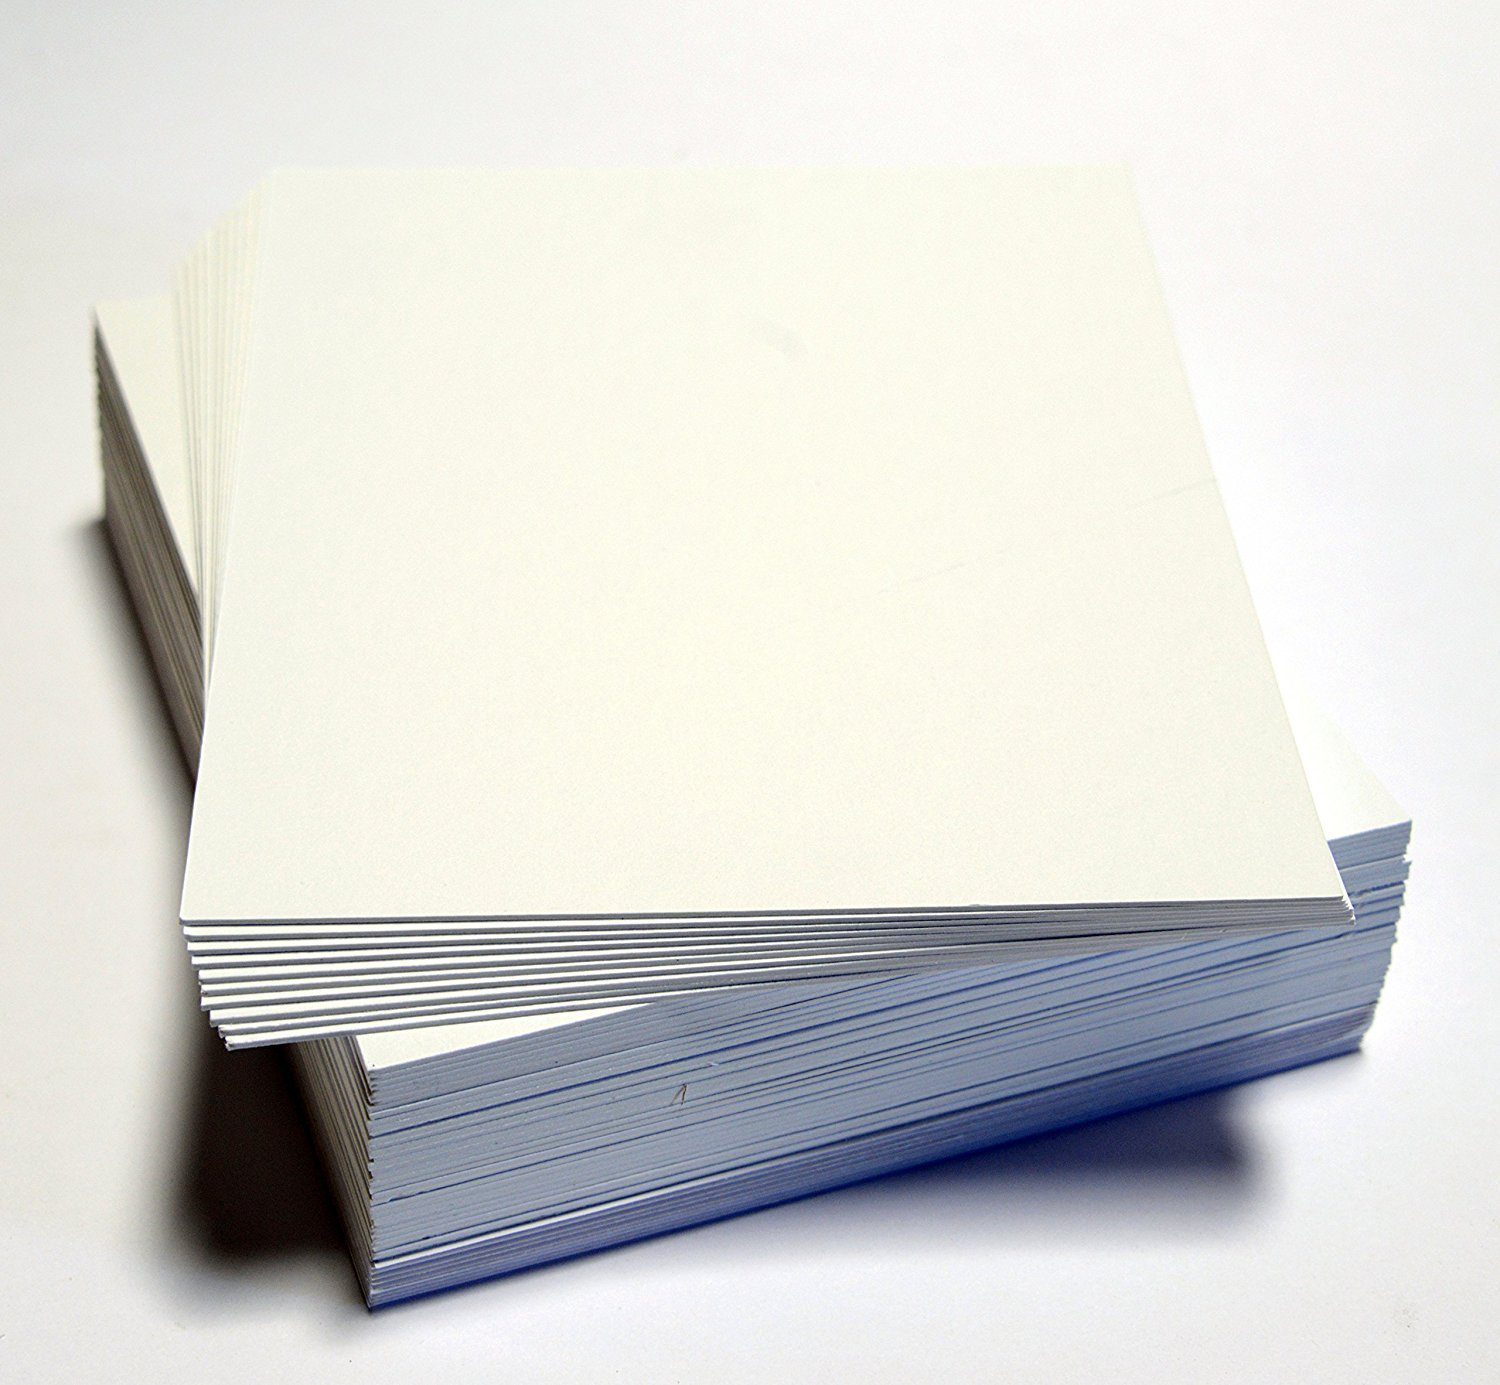 topseller100, Pack of 50 sheets 11x14 UNCUT mat matboard WHITE Color by Unknown